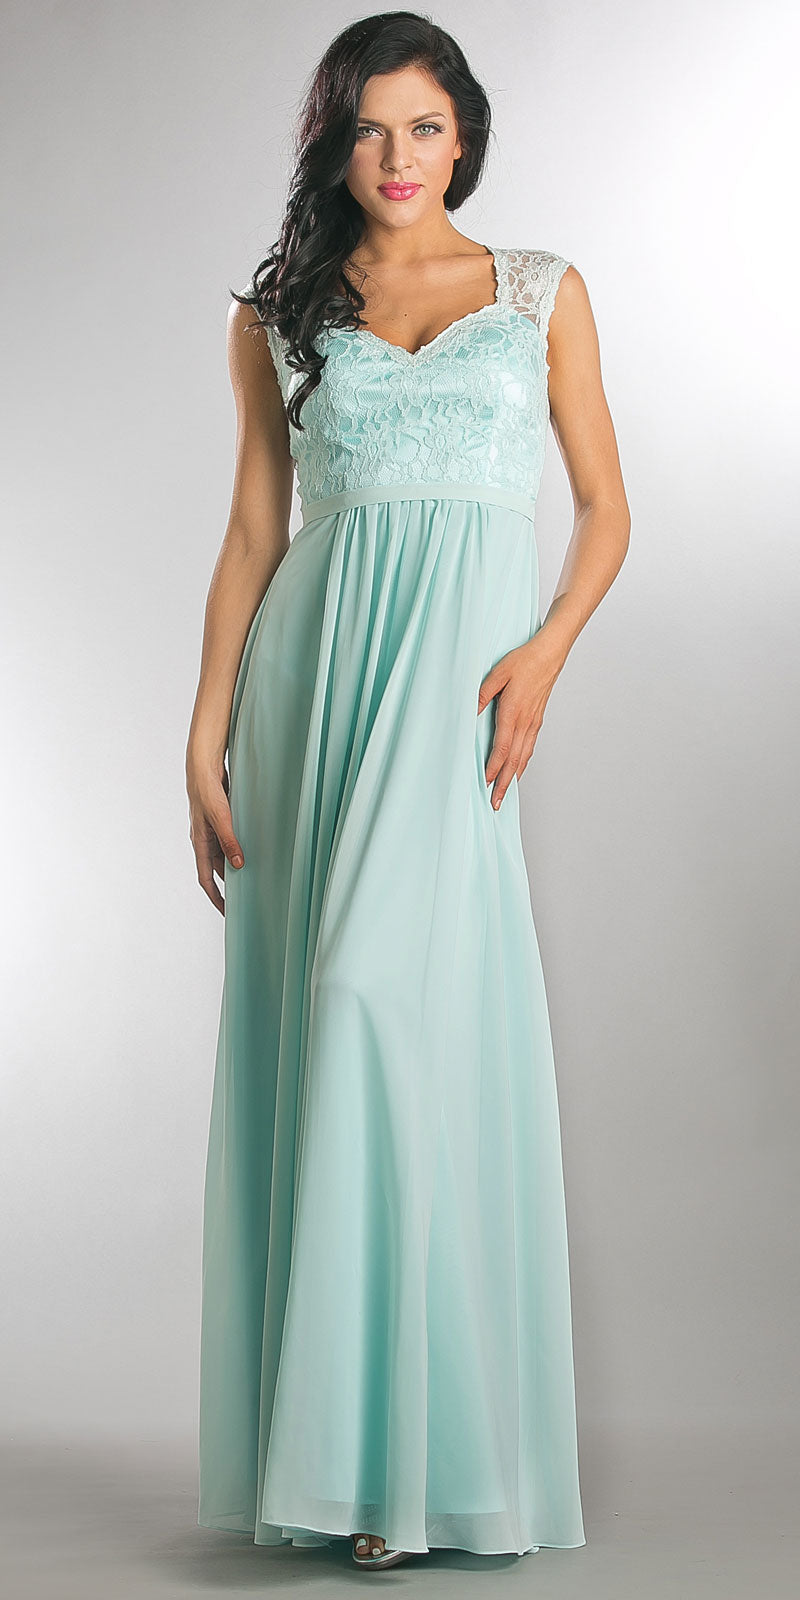 Image of V-neck Lace Top Empire Cut Long Bridesmaid Dress in Aqua